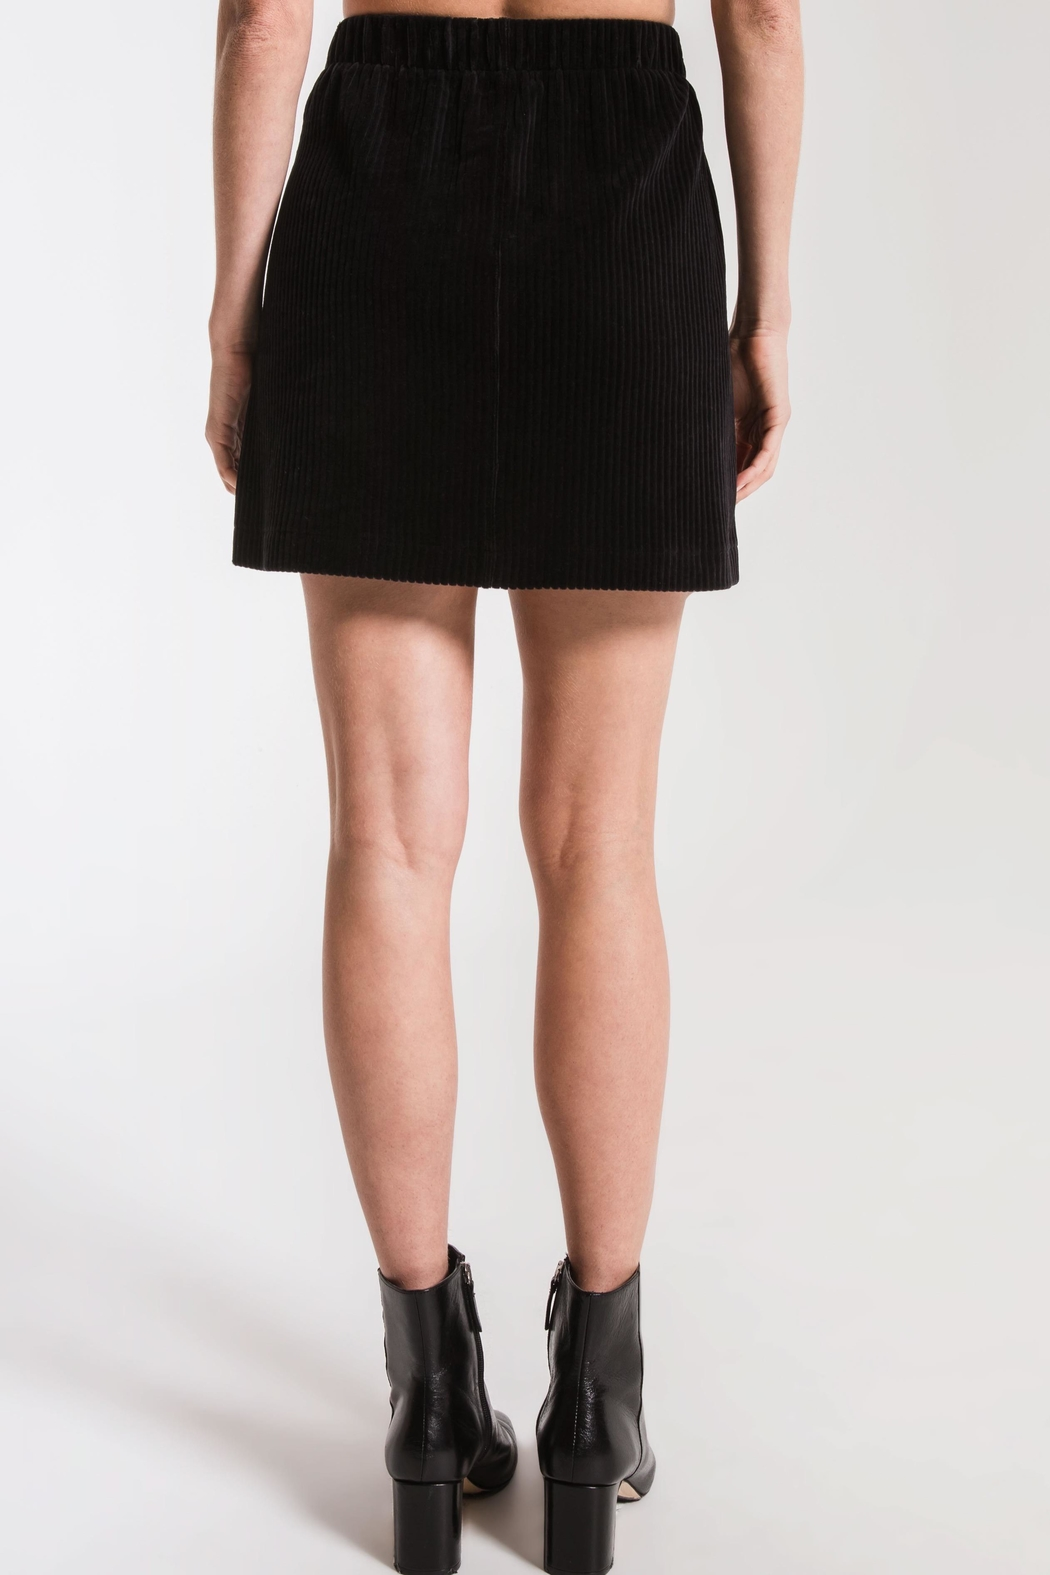 z supply Knit Corduroy Skirt - Side Cropped Image